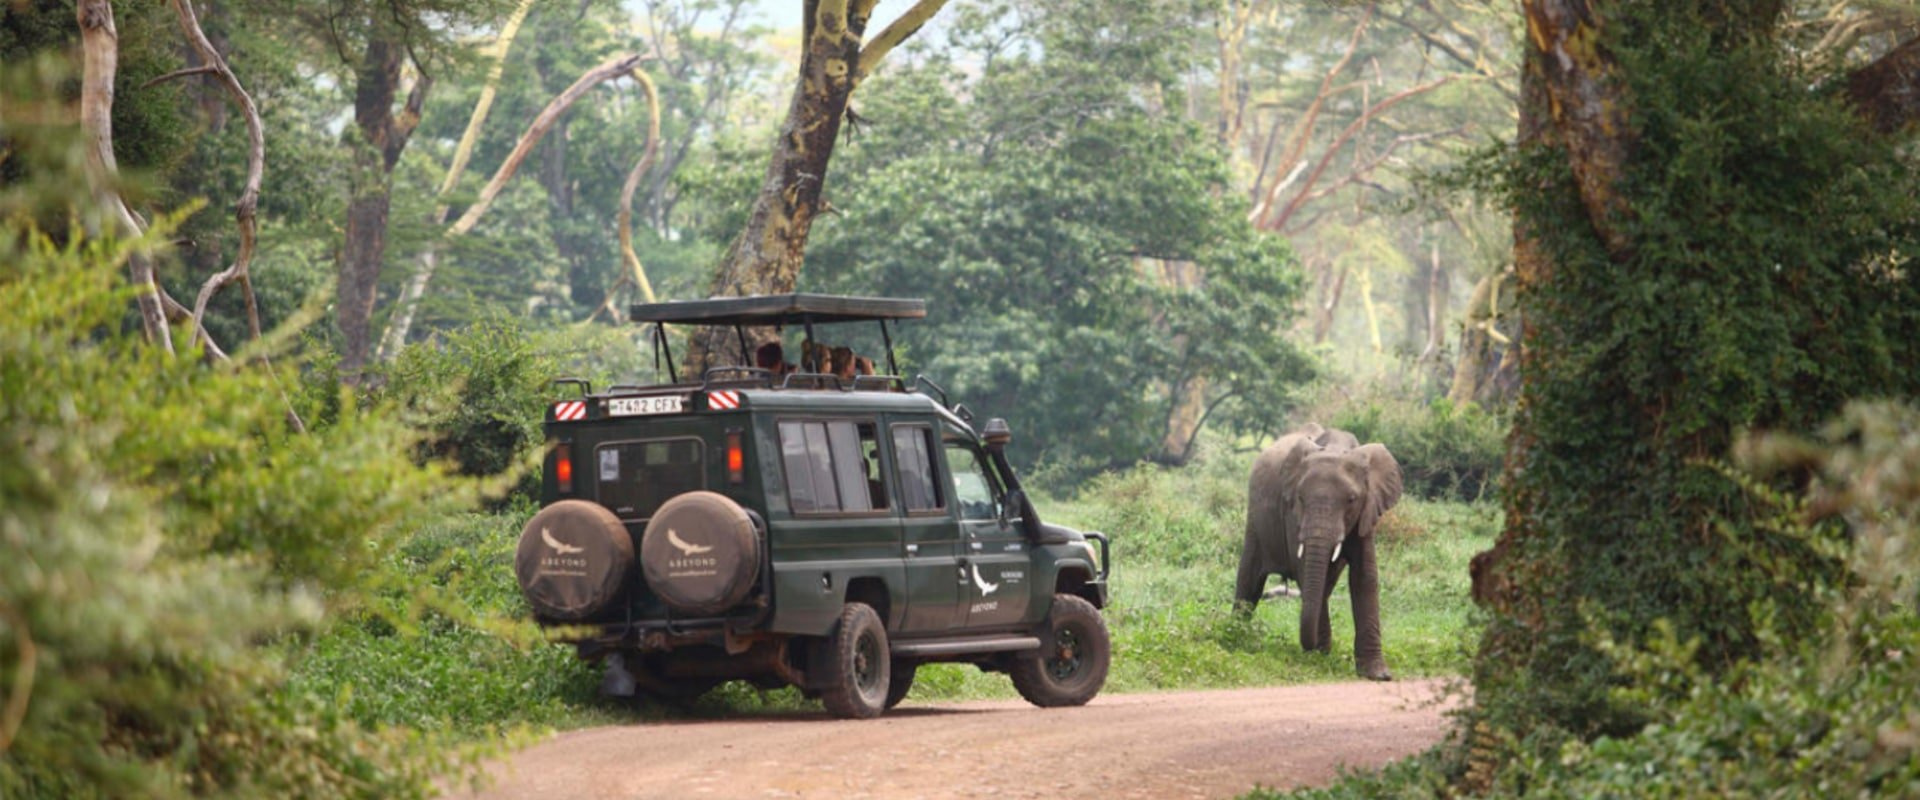 Enjoy spectacular game drives on the Crater floor